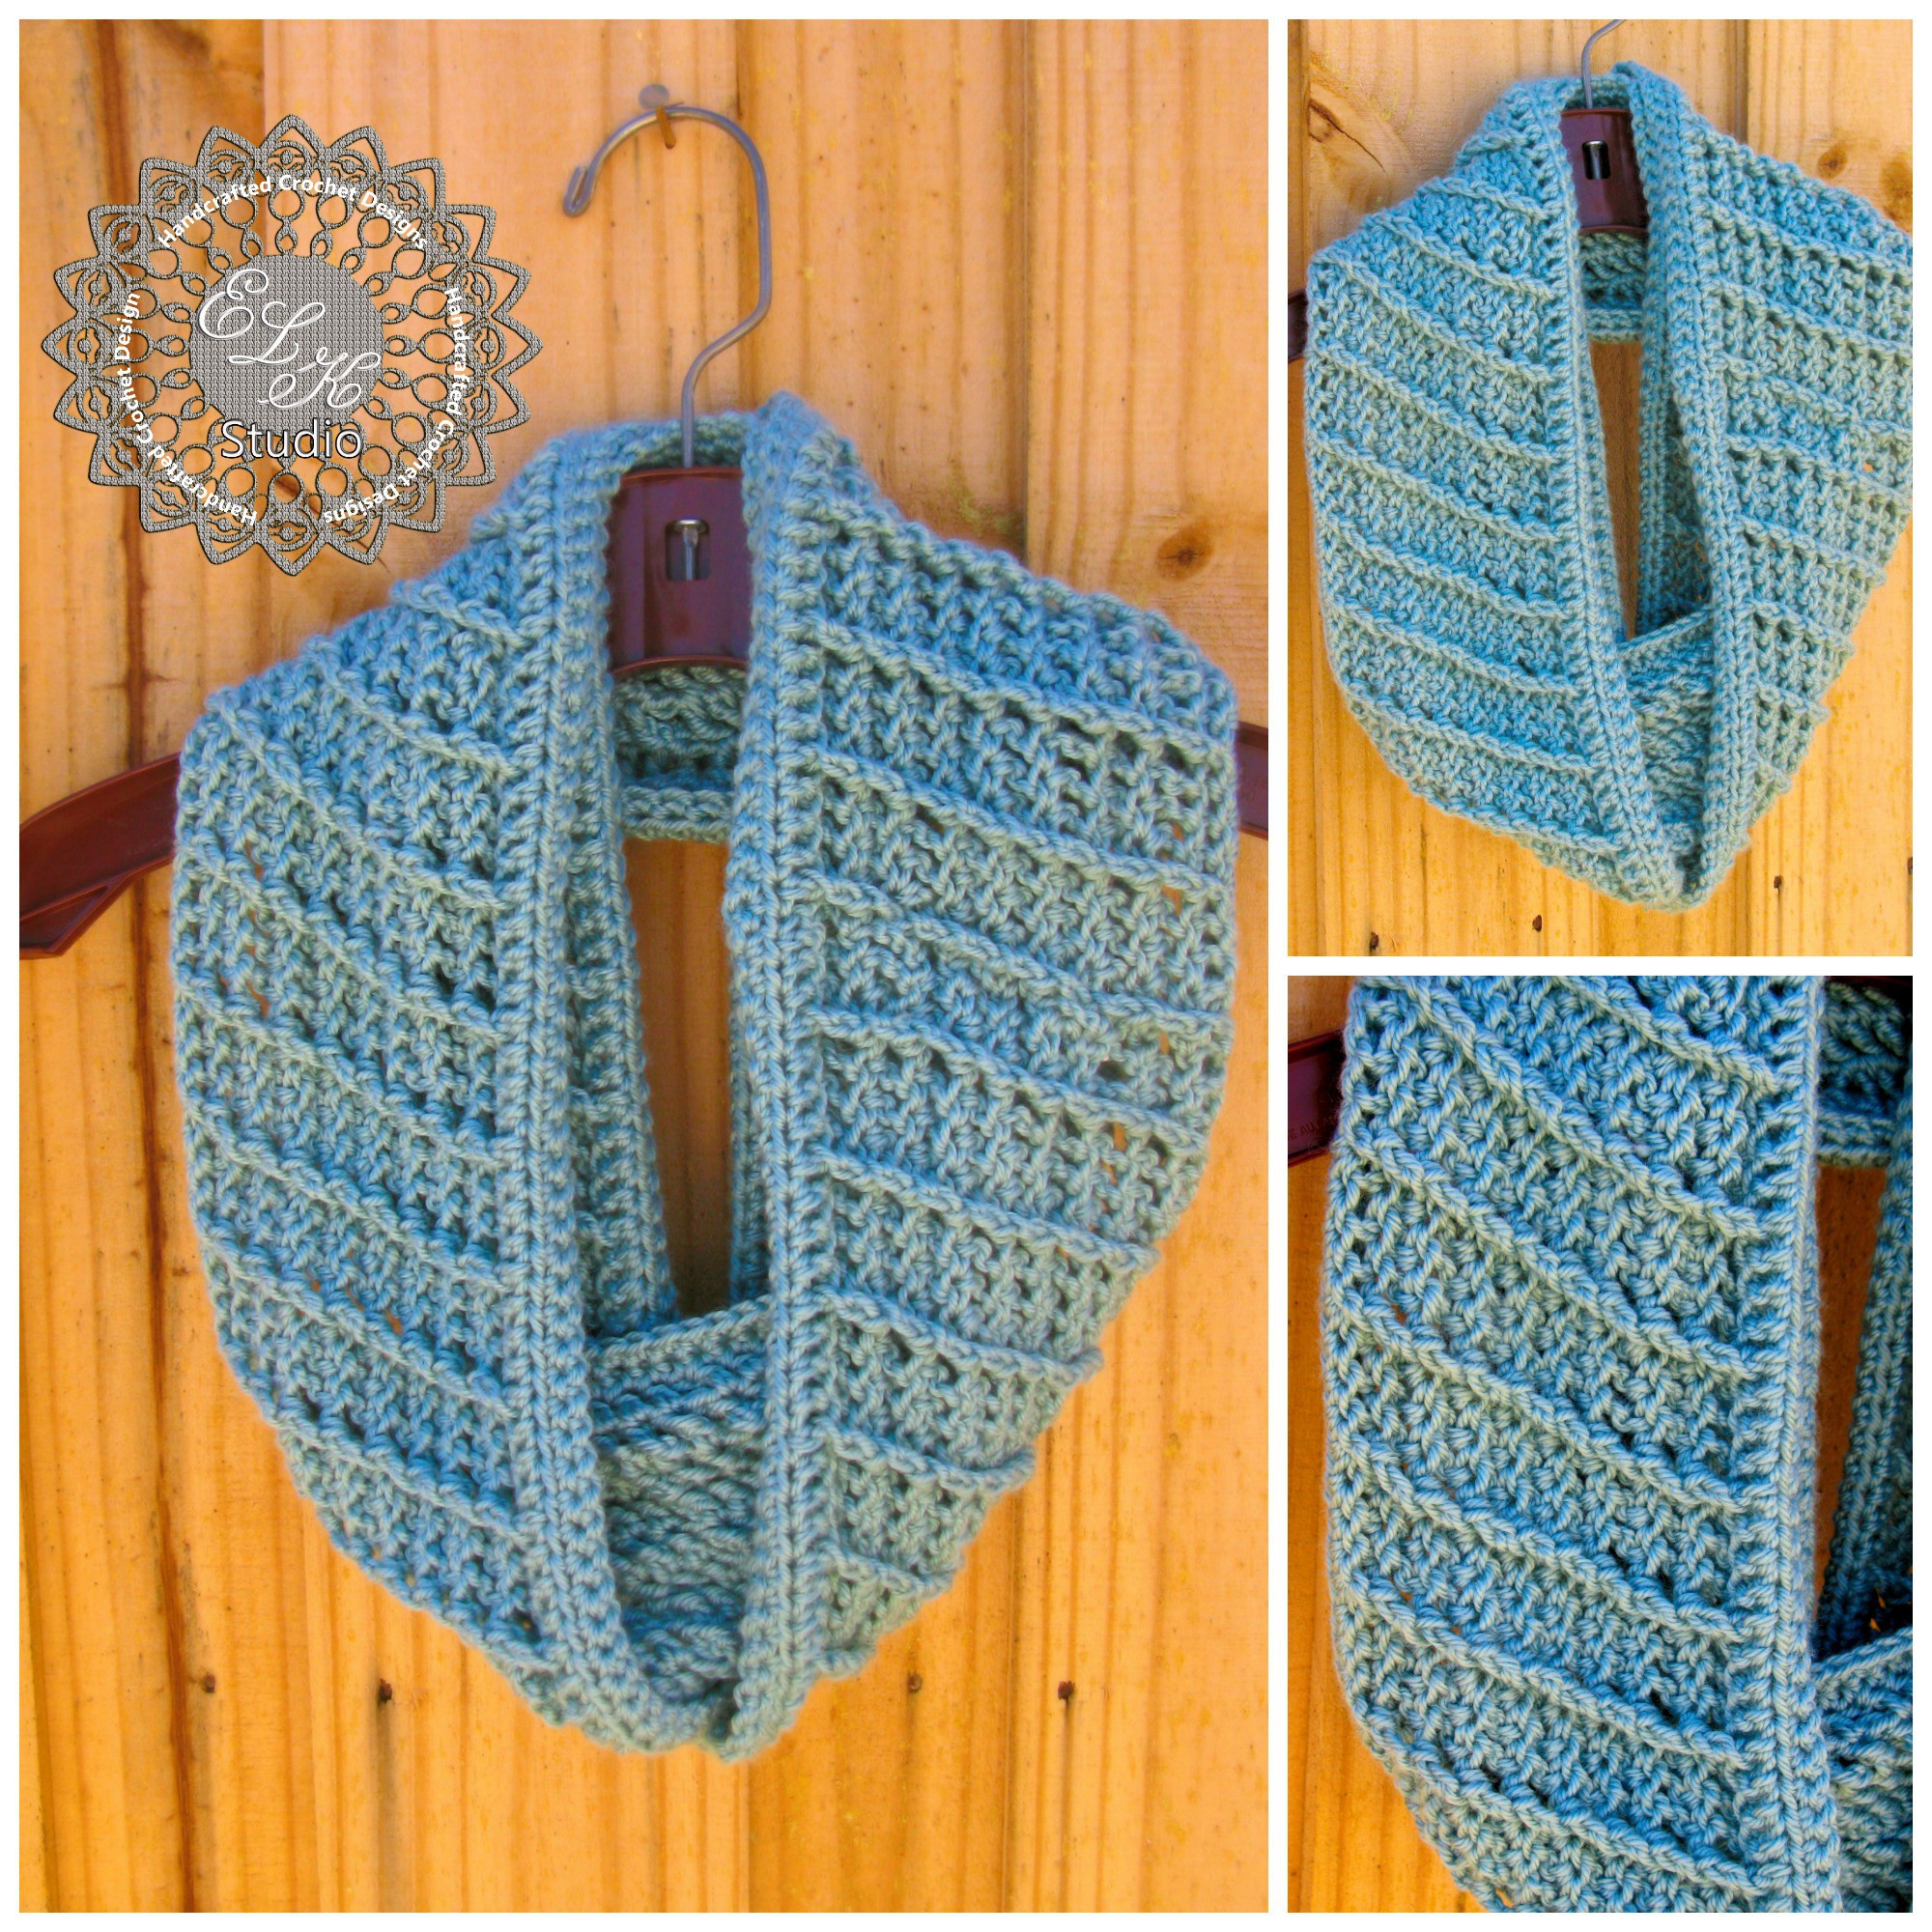 Fresh Country Appeal A Free Crochet Infinity Scarf Pattern Crochet Scarves Of Amazing 43 Photos Crochet Scarves